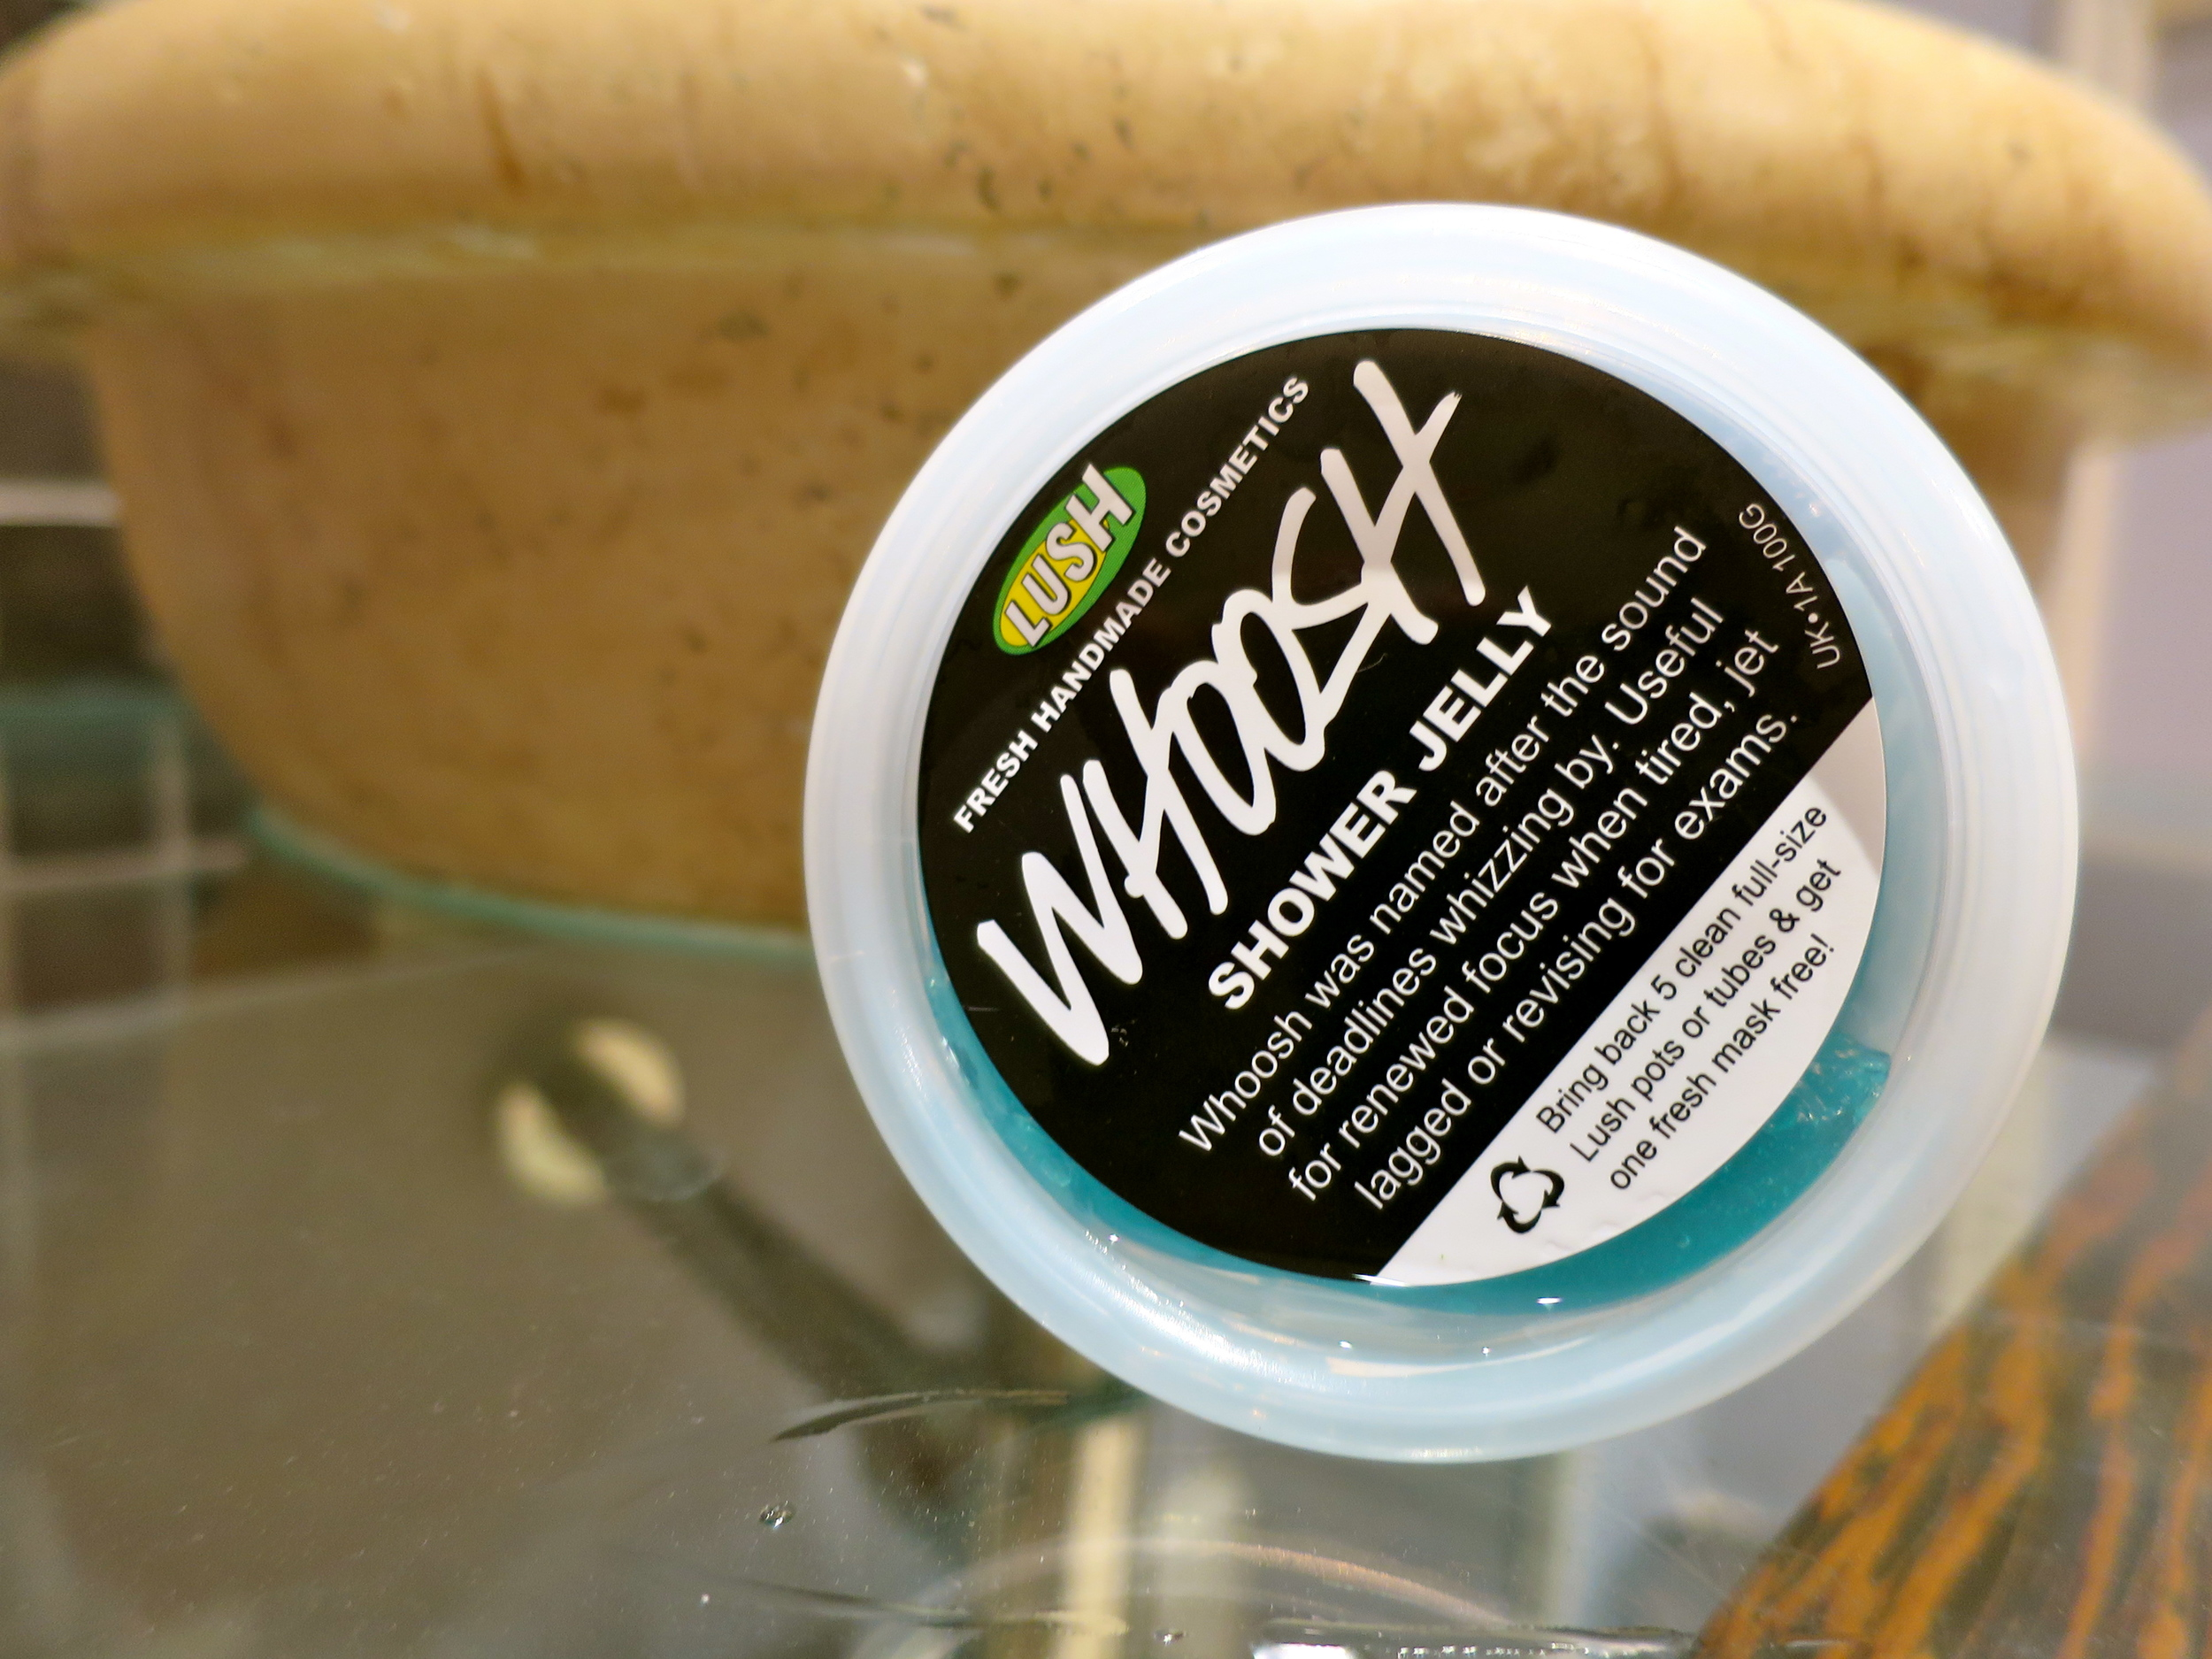 Lush Whoosh Shower Jelly.